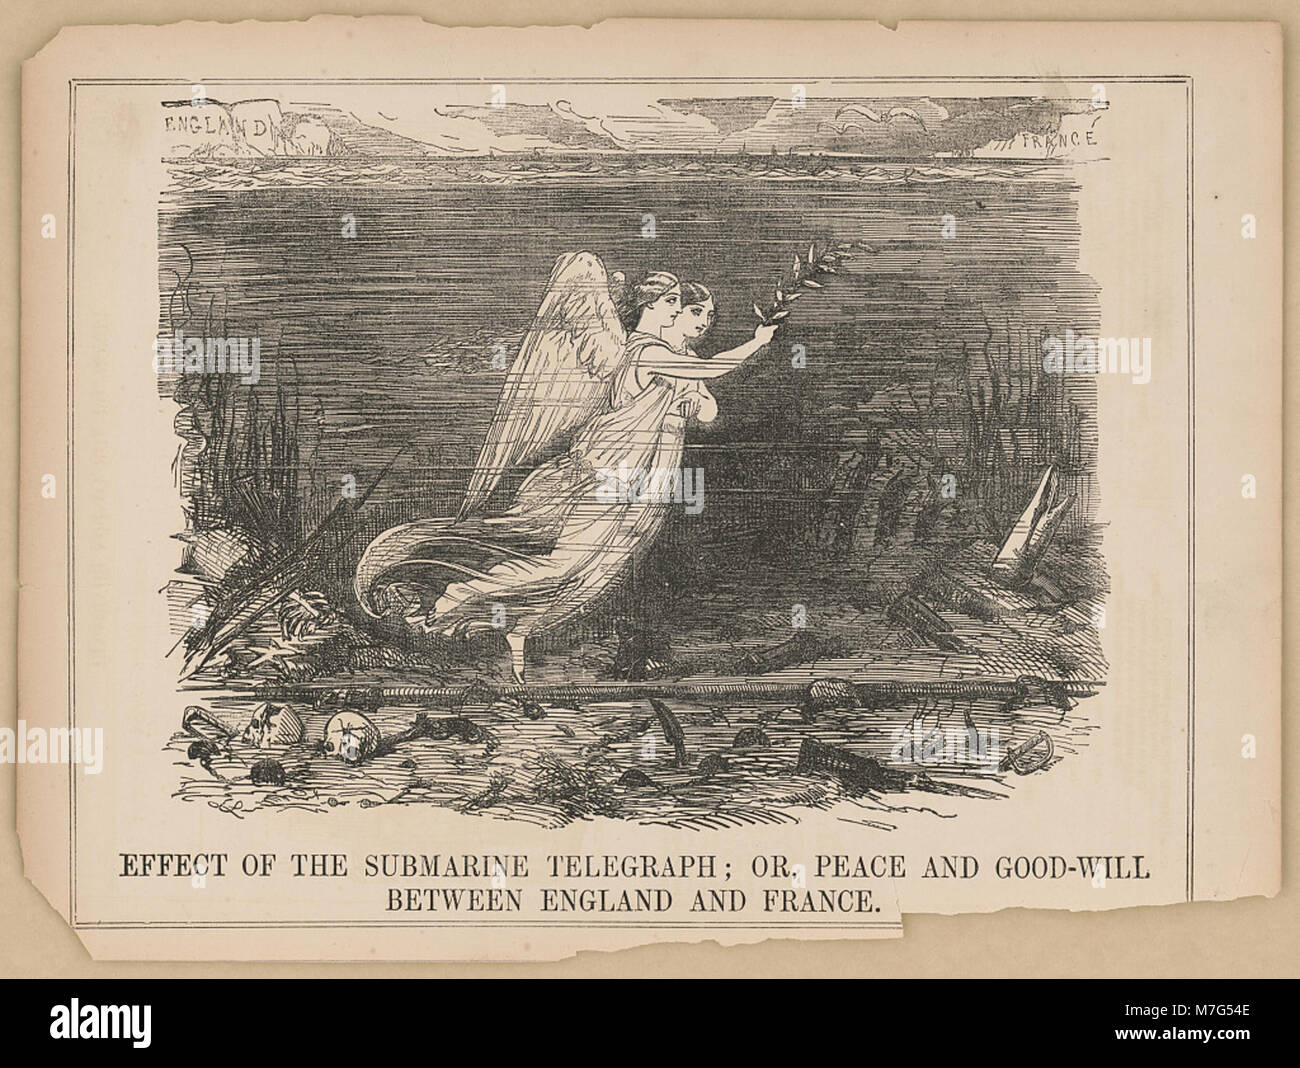 Effect of the submarine telegraph; or peace and good-will between England and France LCCN2016649188 - Stock Image